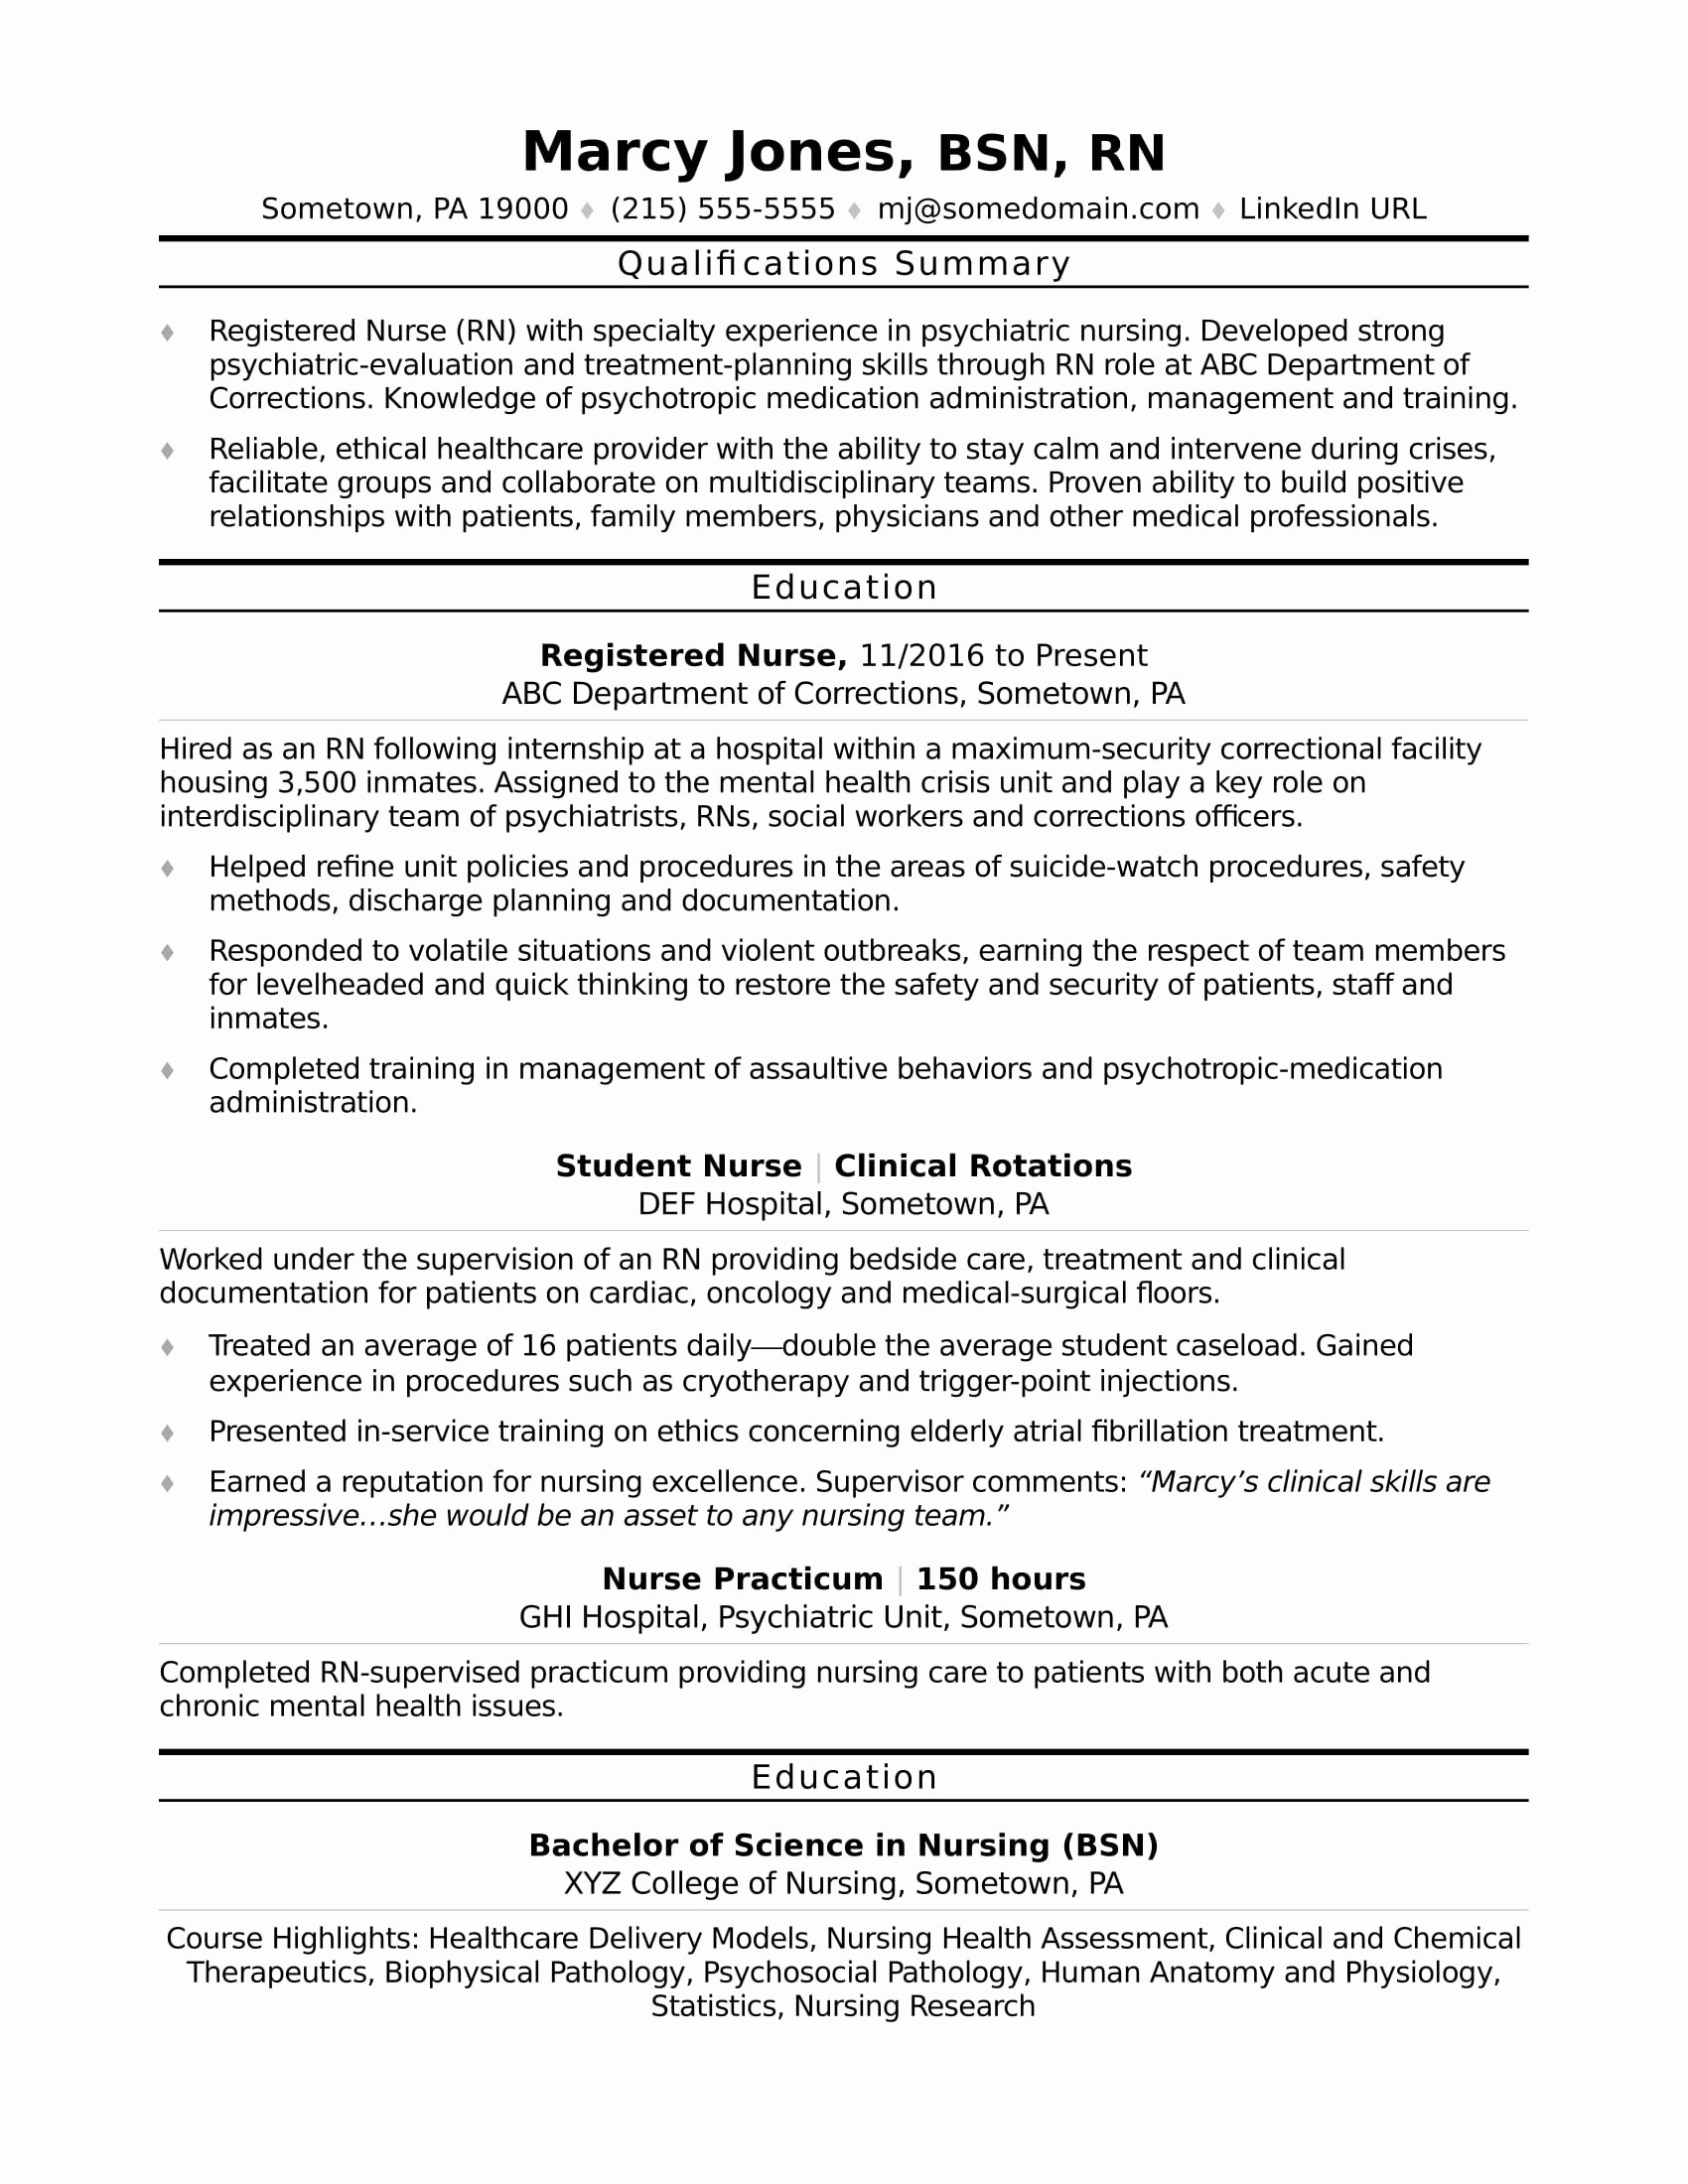 Nursing Student Resume Template Fresh Registered Nurse Rn Resume Sample